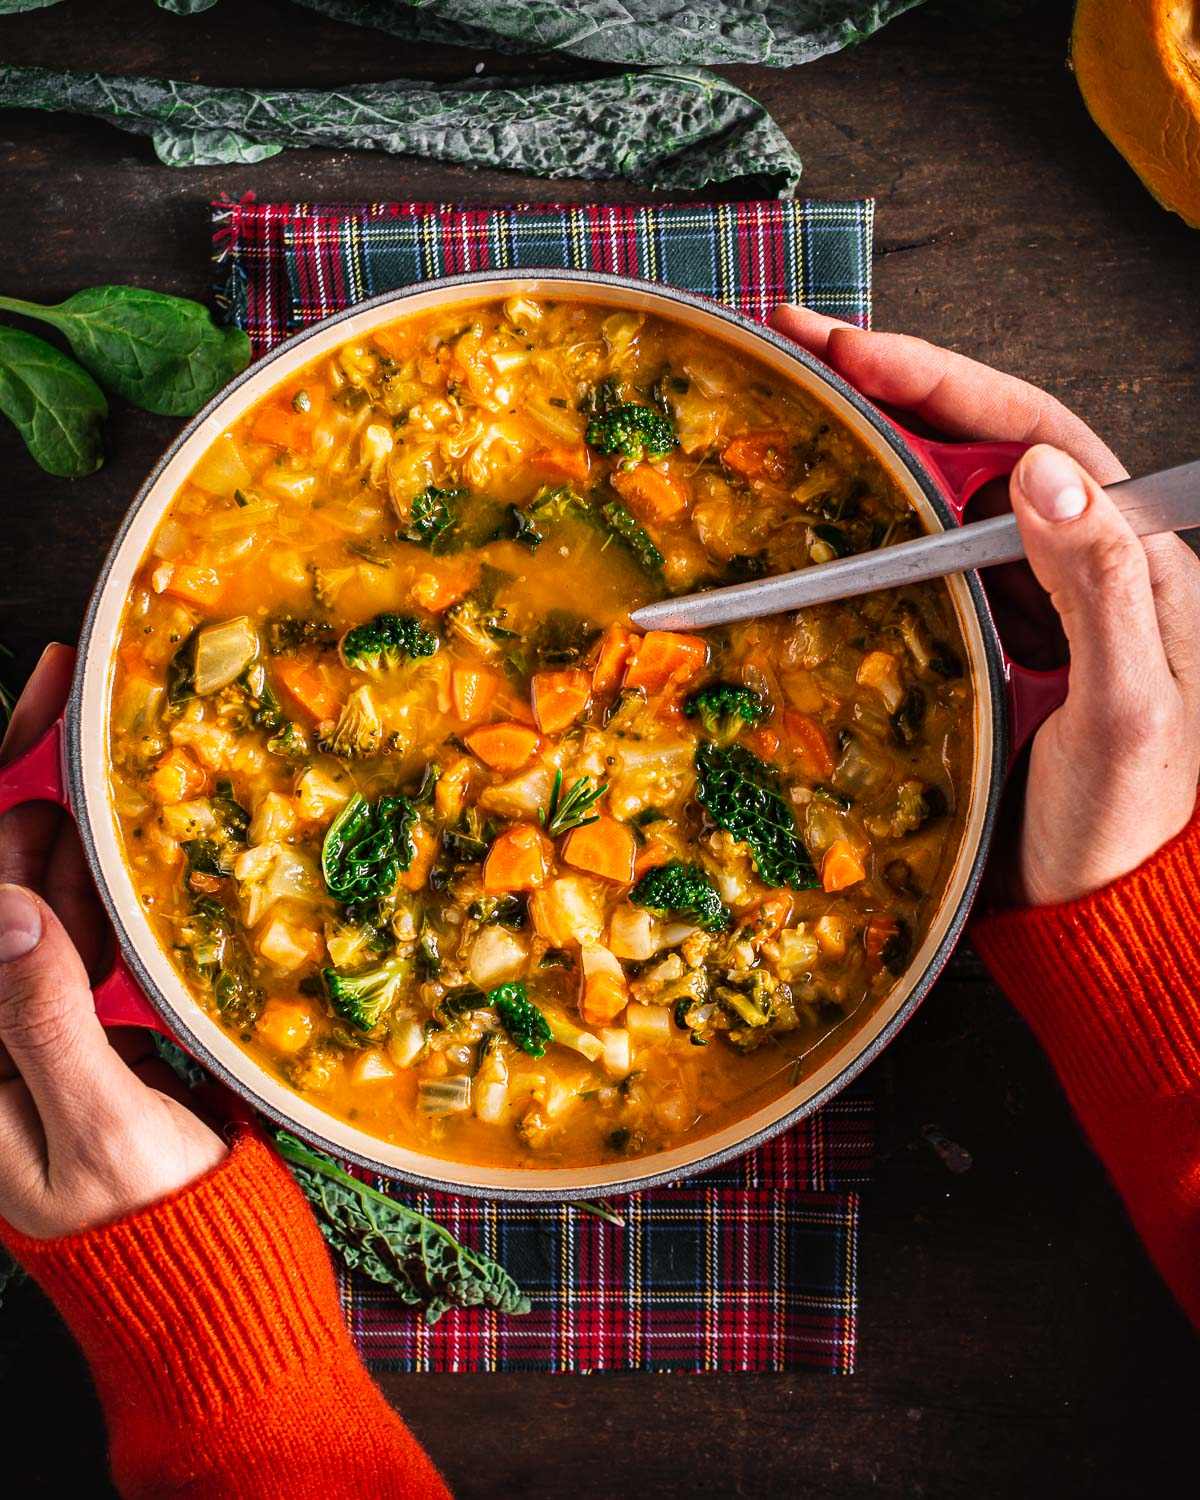 Italian healthy fall minestrone soup recipe autumn vegetable soup ricetta minestrone di verdure autunnale con zucca cavolo toscano zuppa di verdure